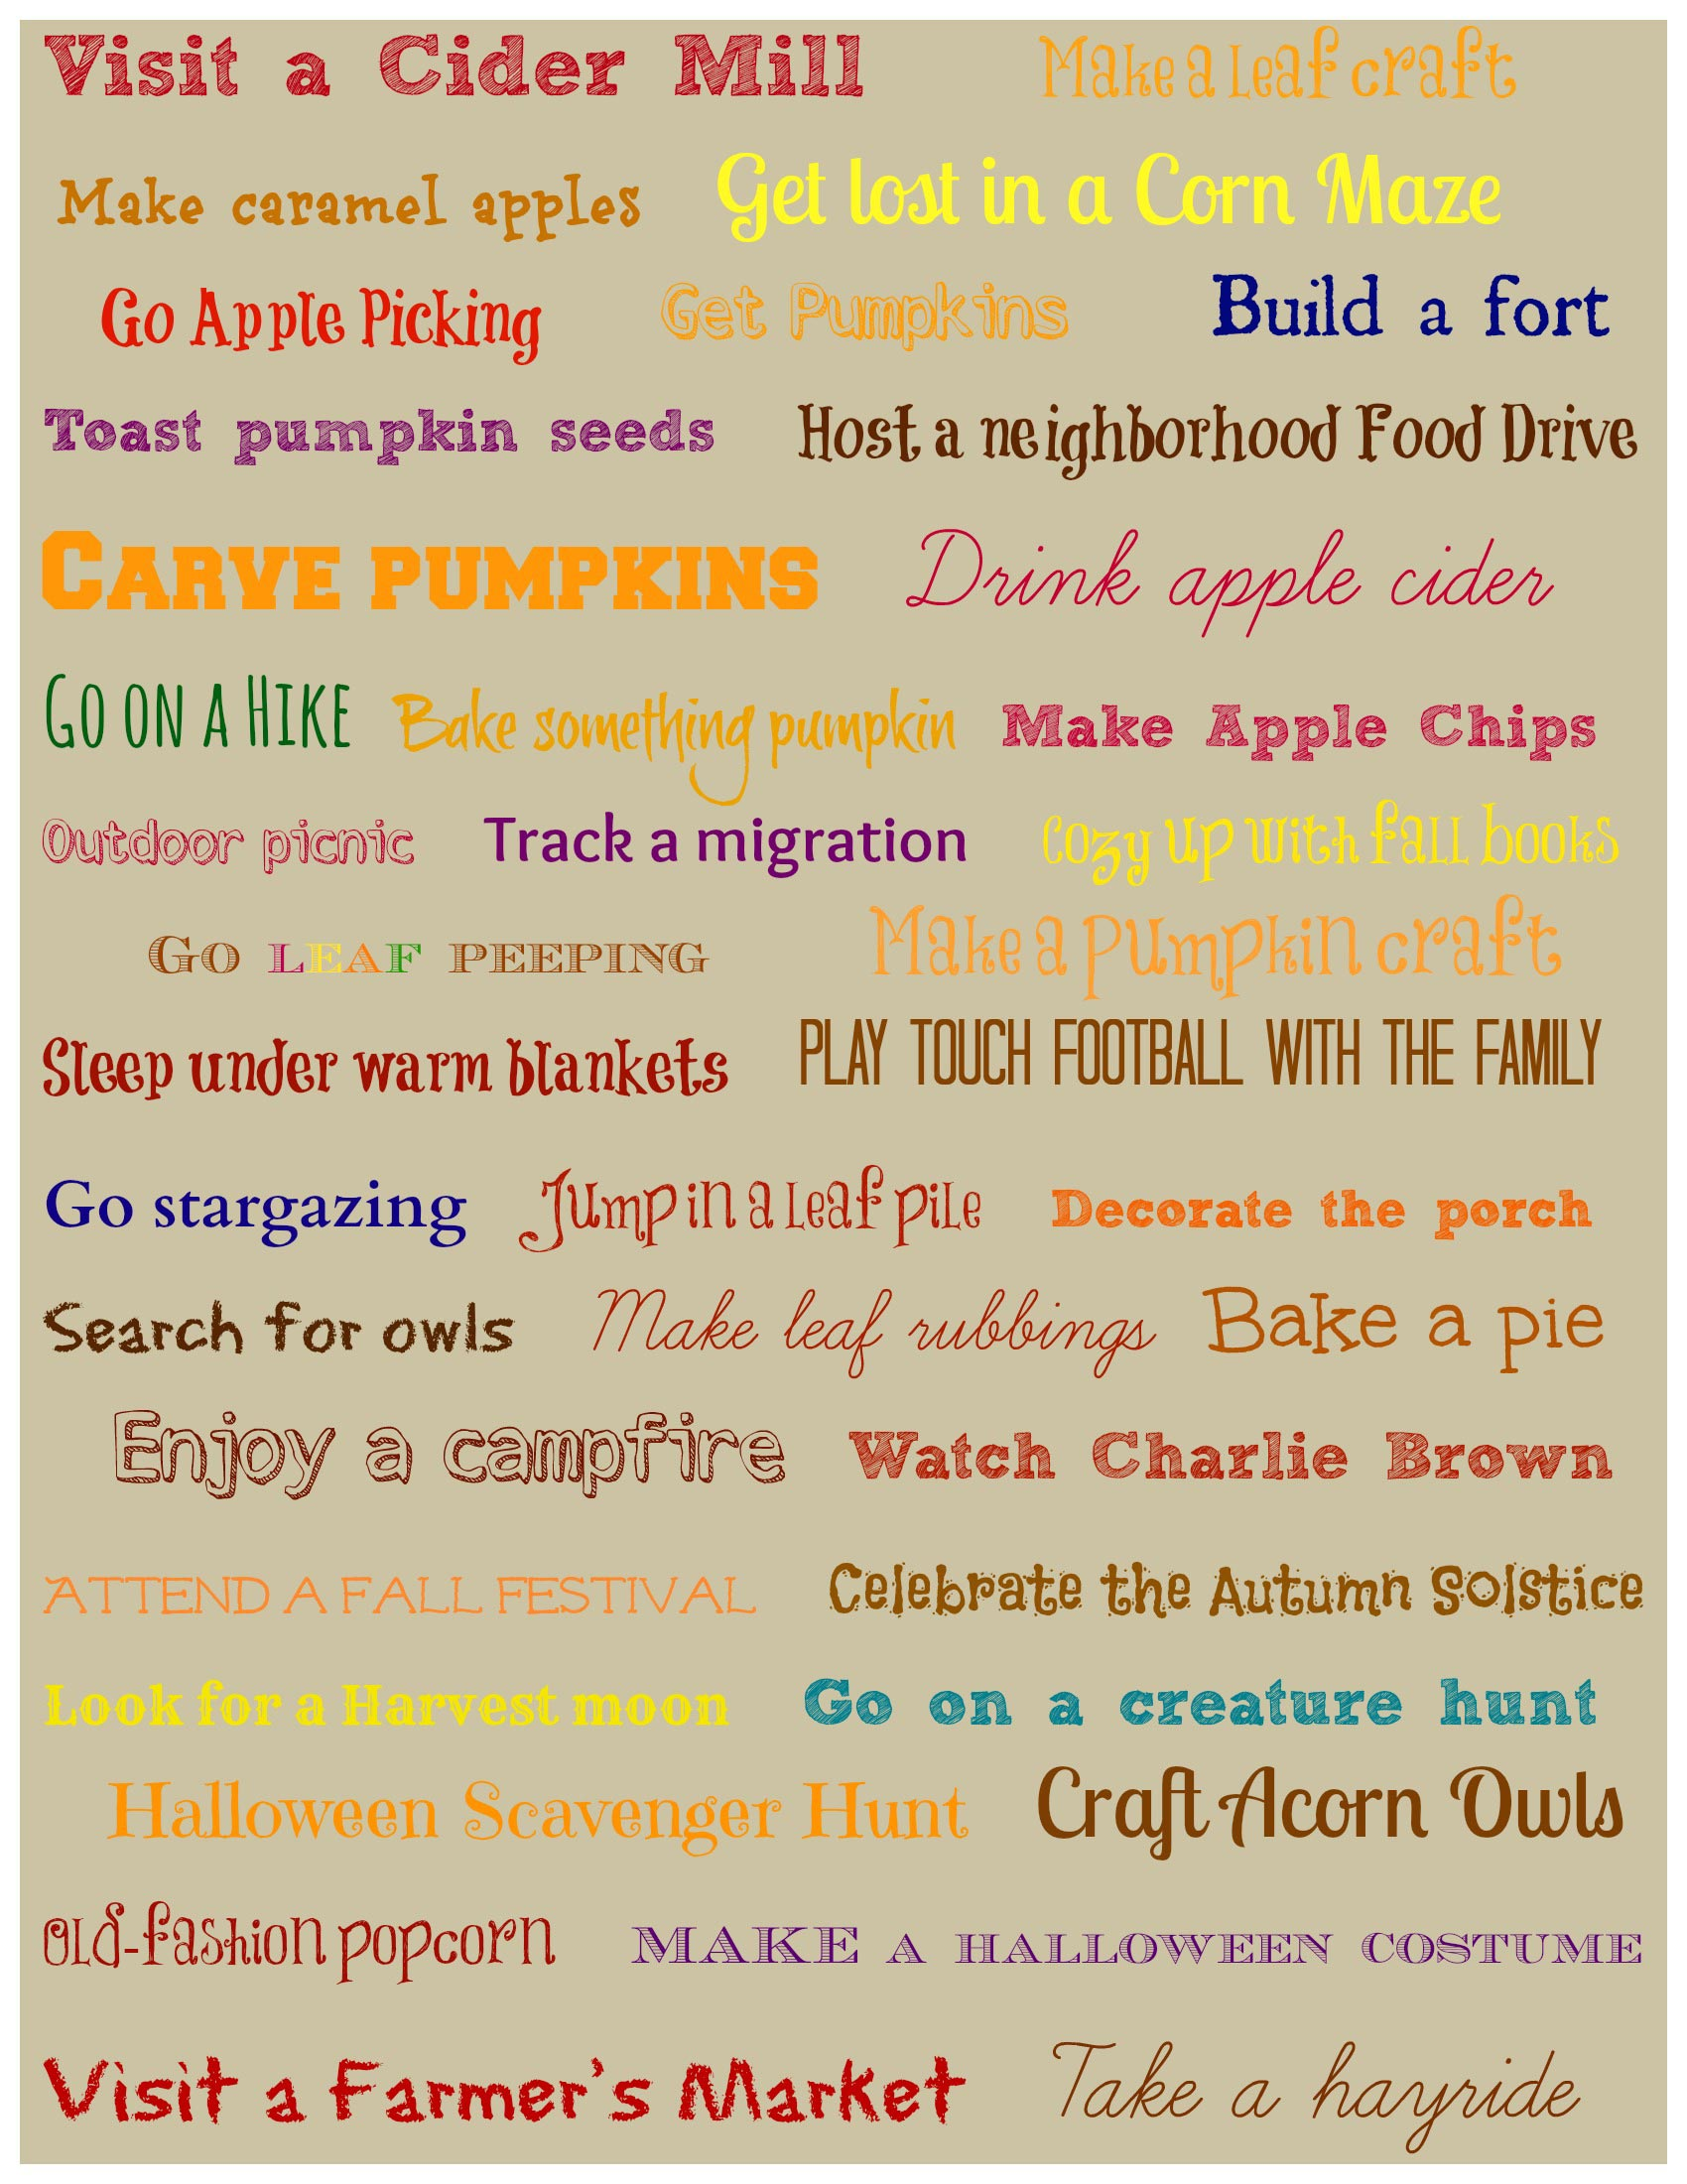 Fun things to do in the Fall